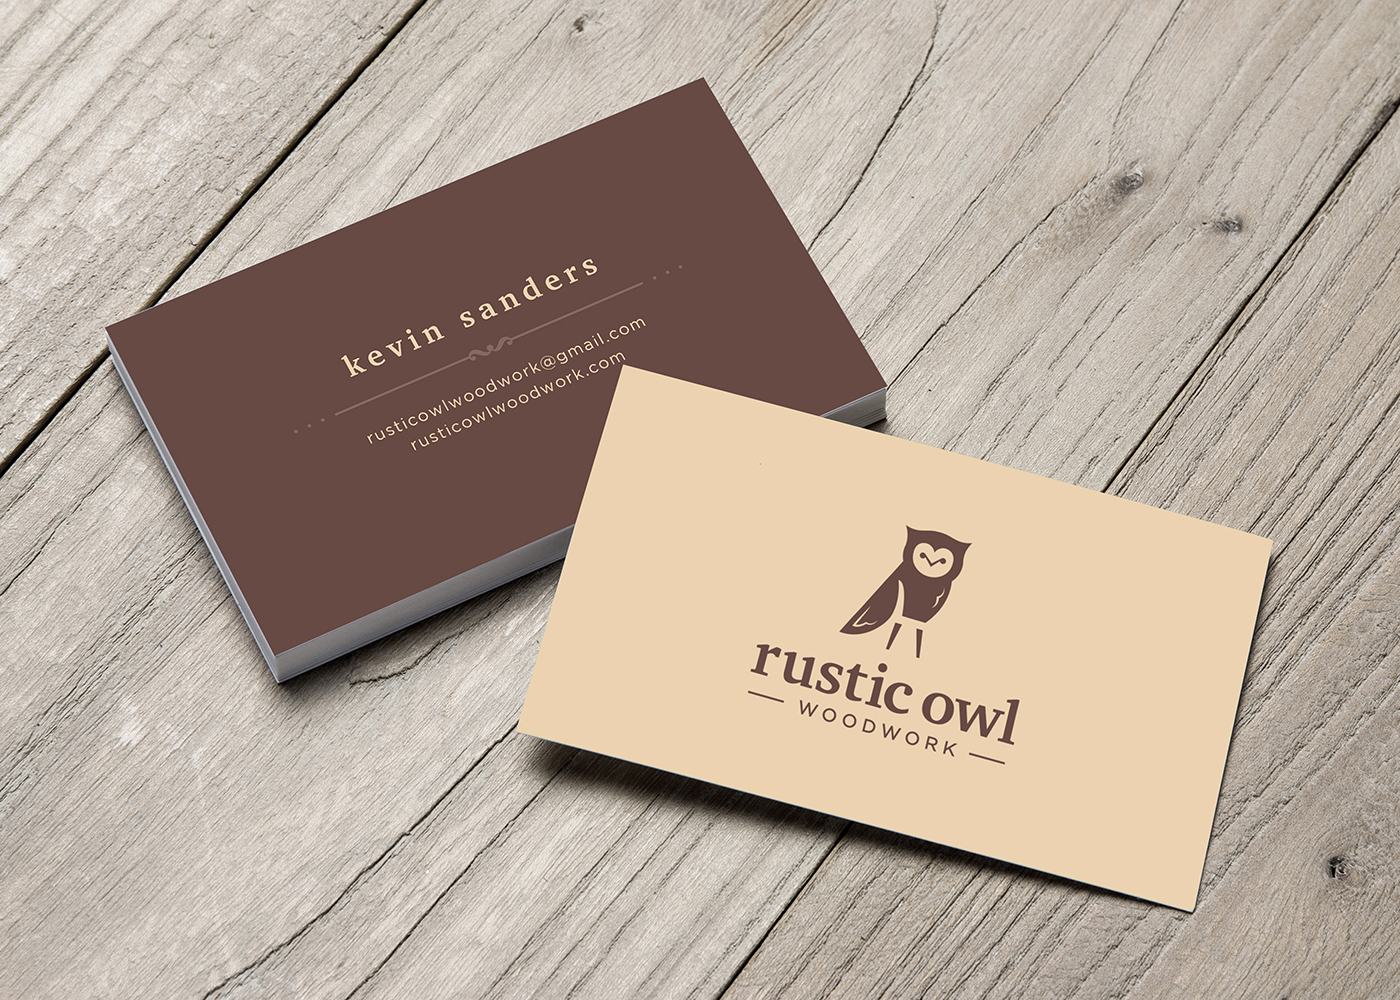 Rustic Owl: Logo & Business Card Design on Behance